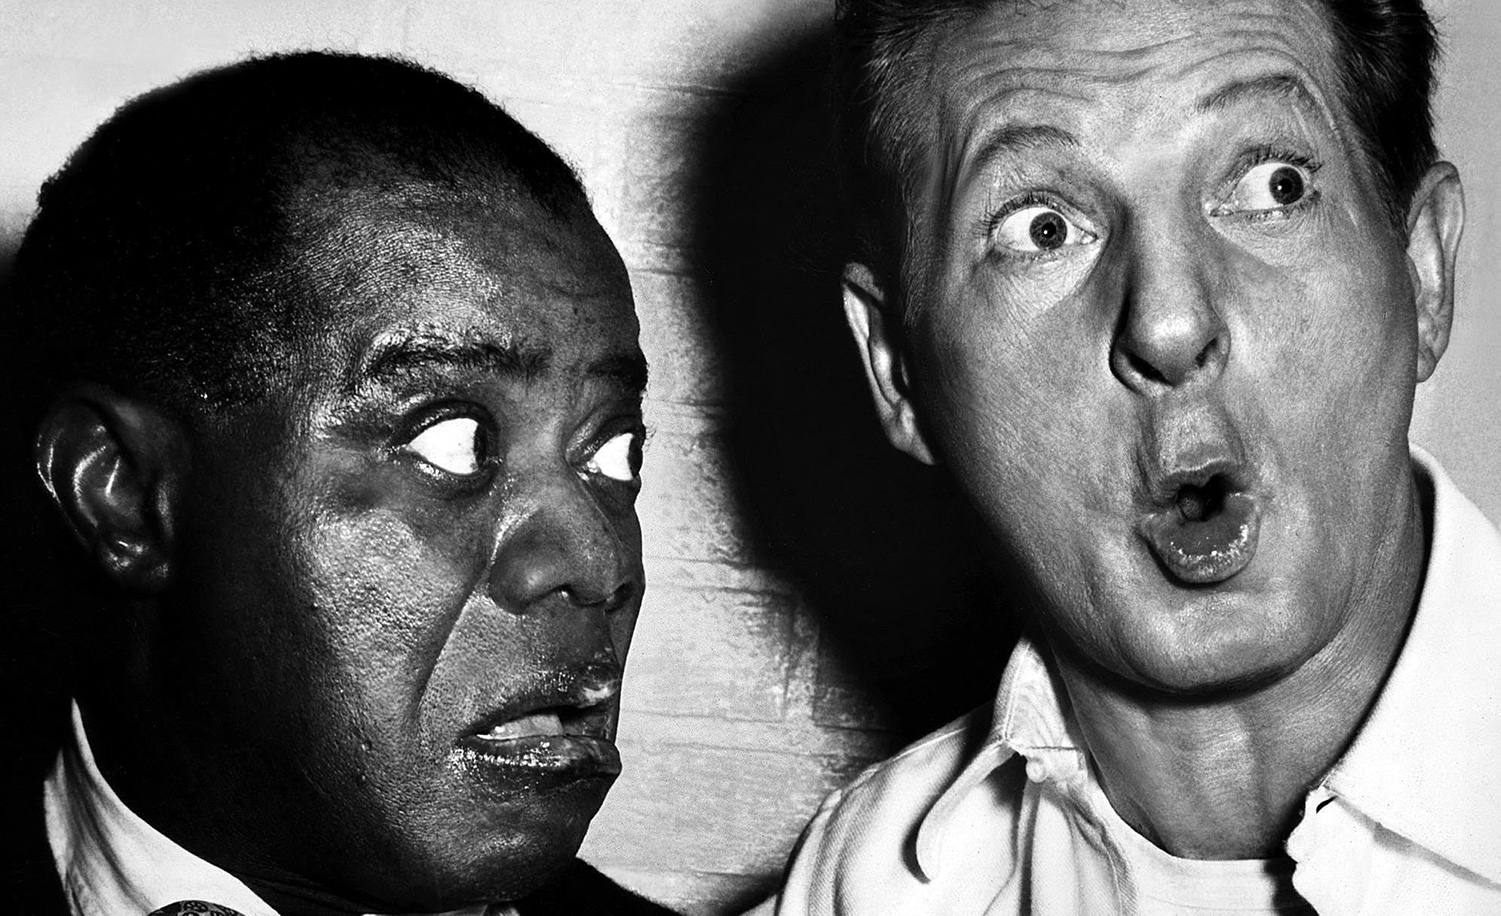 Louis Armstrong and Danny Kaye making a tararam in The Five Pennies, 1959. PARAMOUNT PICTURES and A.F. ARCHIVE.